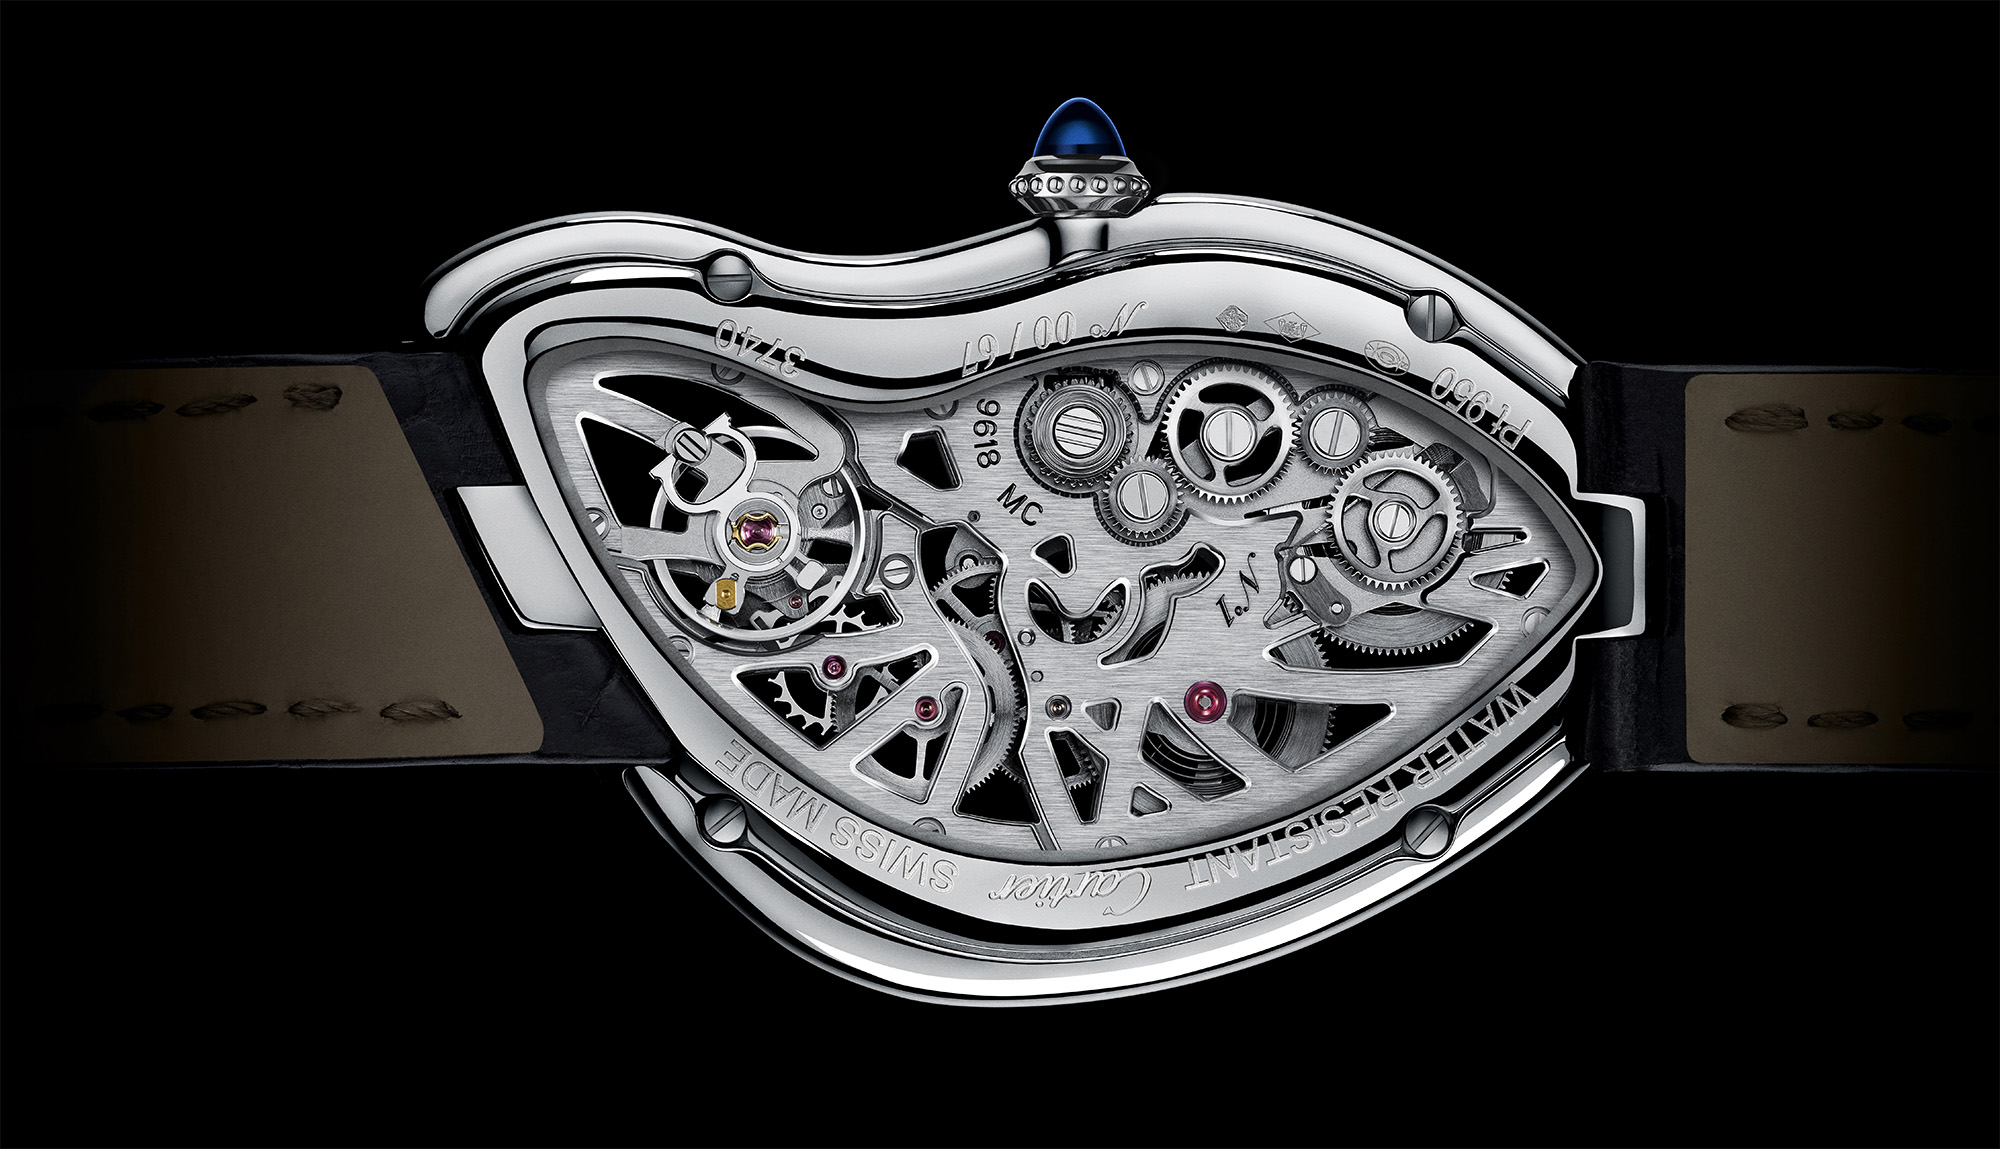 Cartier Crash Skeleton - Caseback